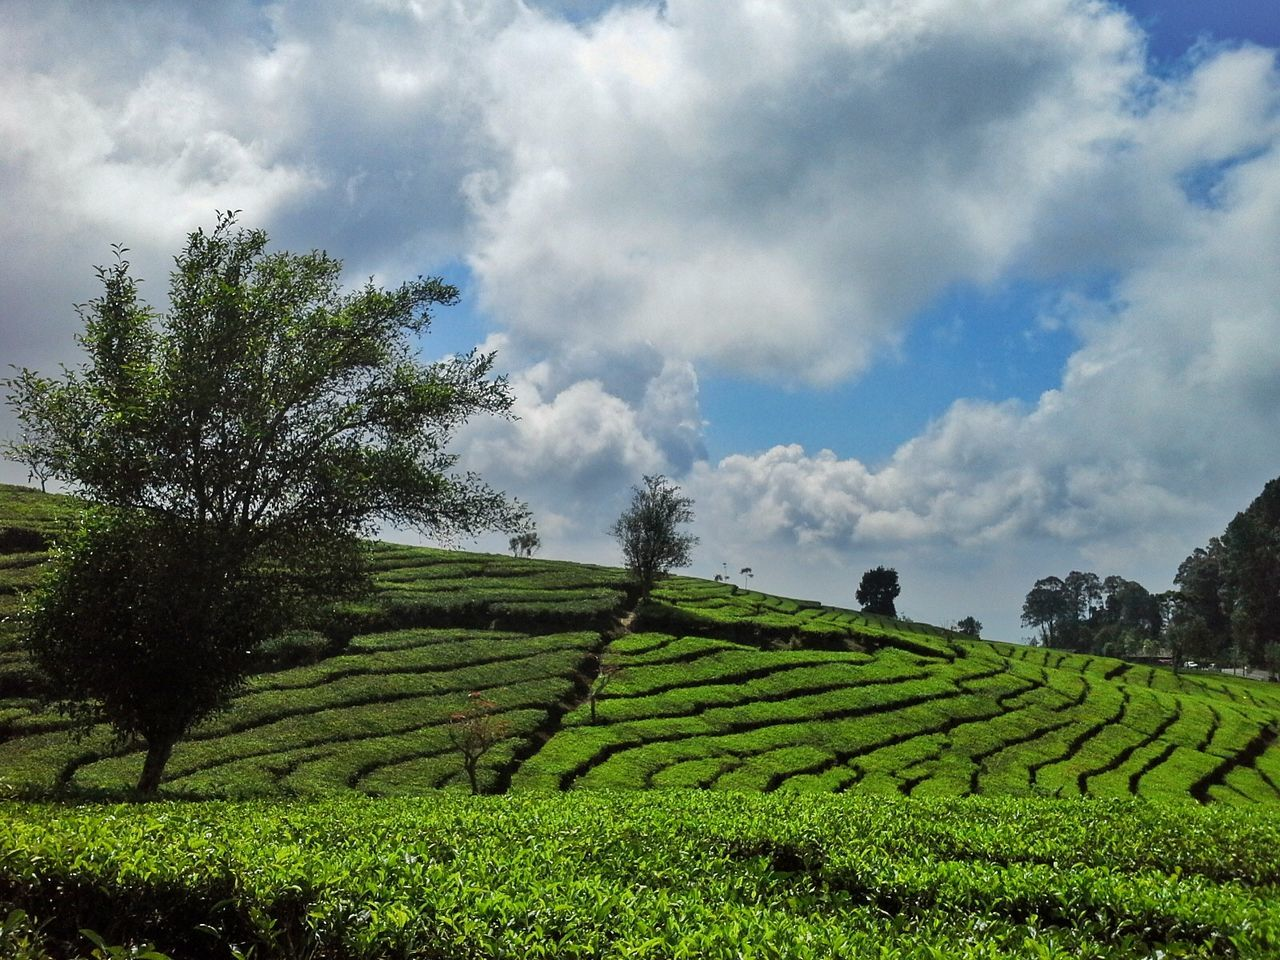 Agriculture Cloud - Sky Field Farm Tree Growth Rural Scene Sky Tea Crop Nature Outdoors Plantation Scenics Green Color Landscape Beauty In Nature No People Healthy Eating Day Best EyeEm Shot Best Shots EyeEm EyeEm Best Shots Trees EyeEmBestEdits Sunlight